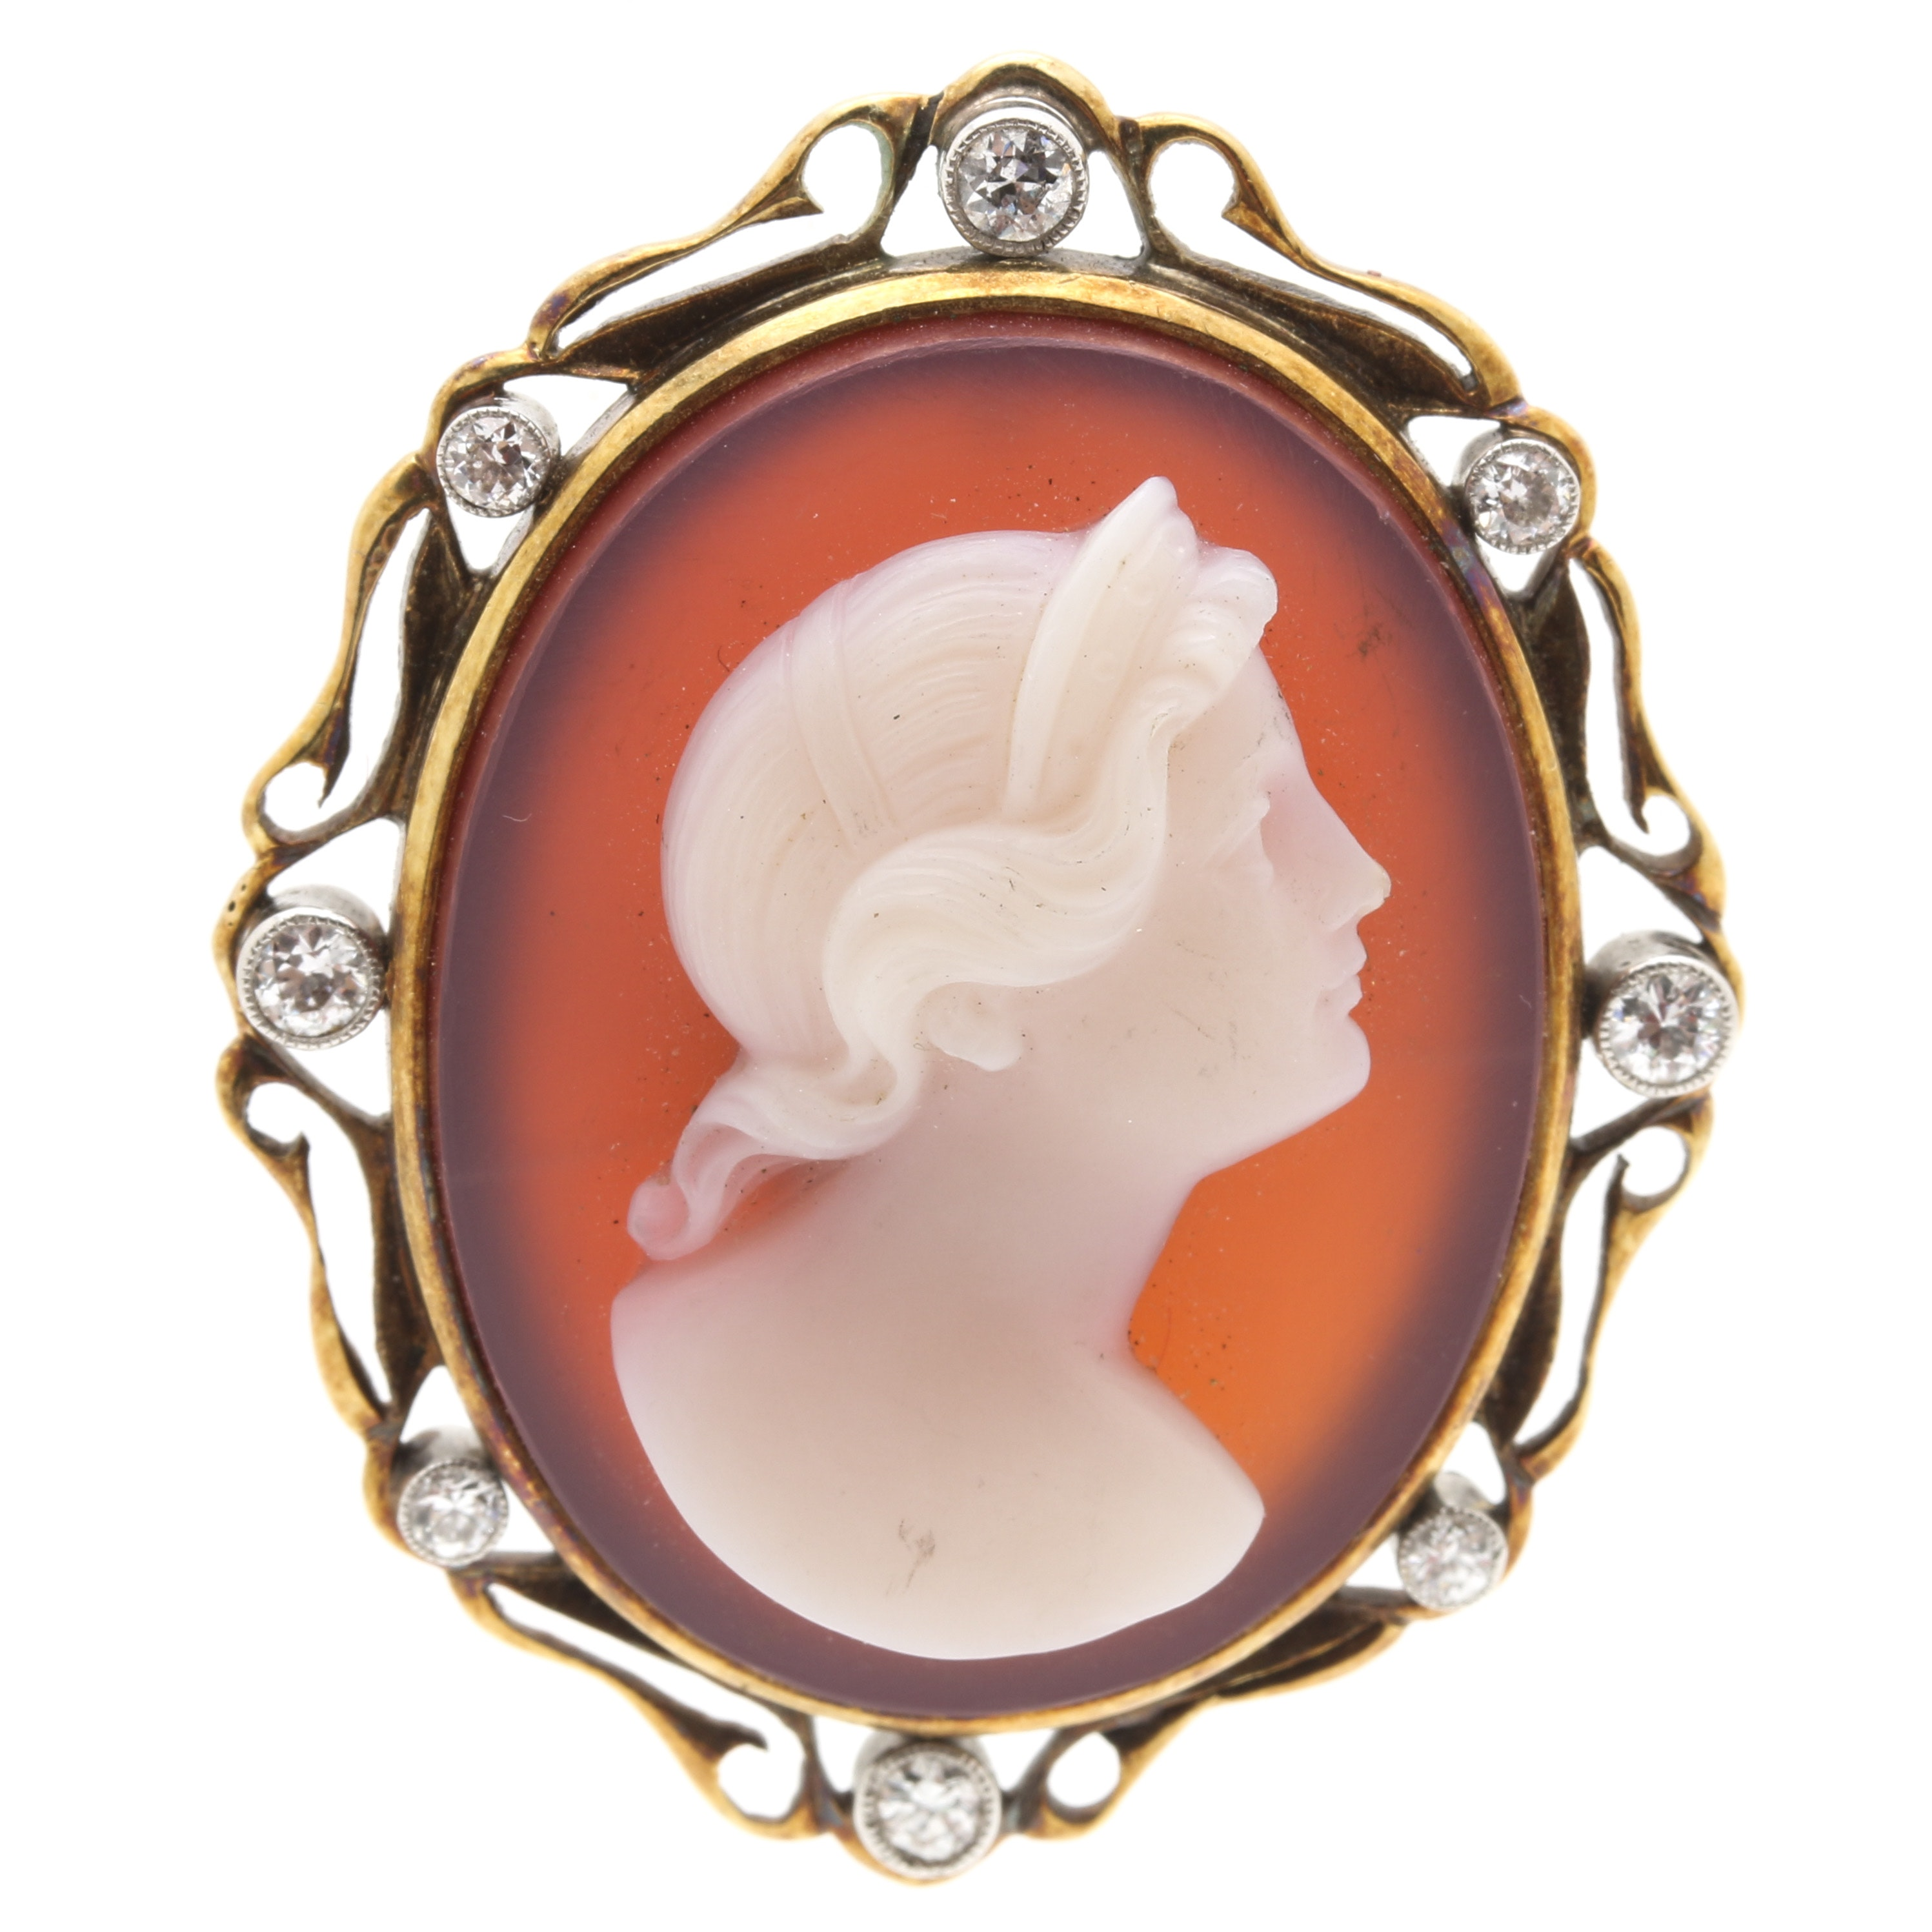 14K Yellow Gold Diamond and Agate Cameo Brooch Pendant